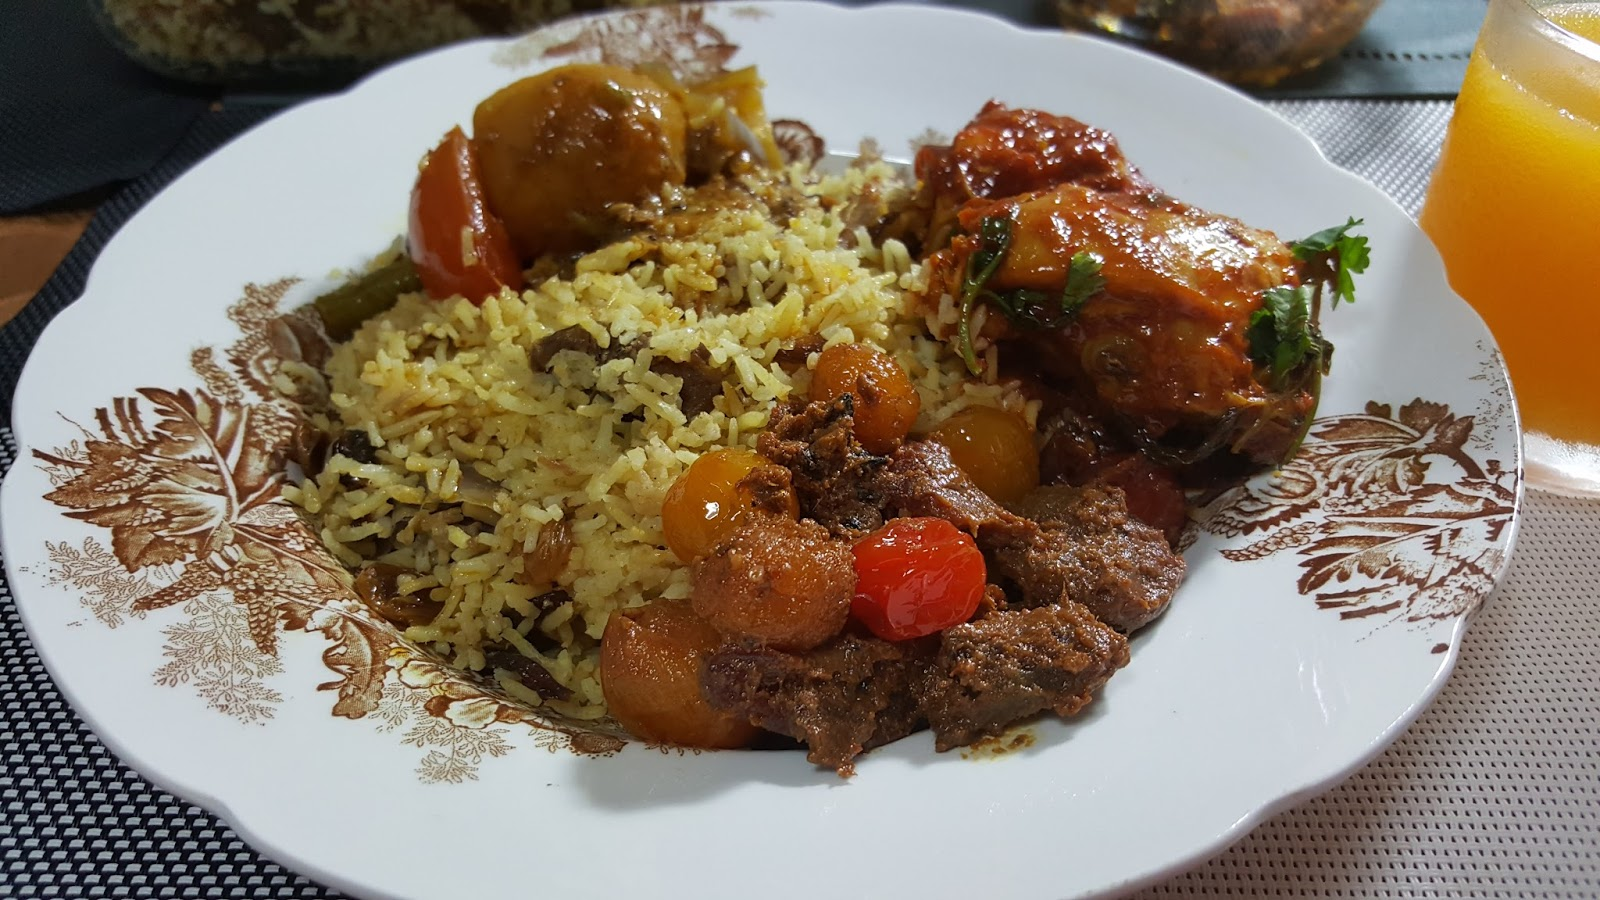 Flavourful Beef Rice Or Nasi Daging A Malay Dish Fragrant And Less Greasy Delicious Served With Ayam Masak Merah Acar Buah